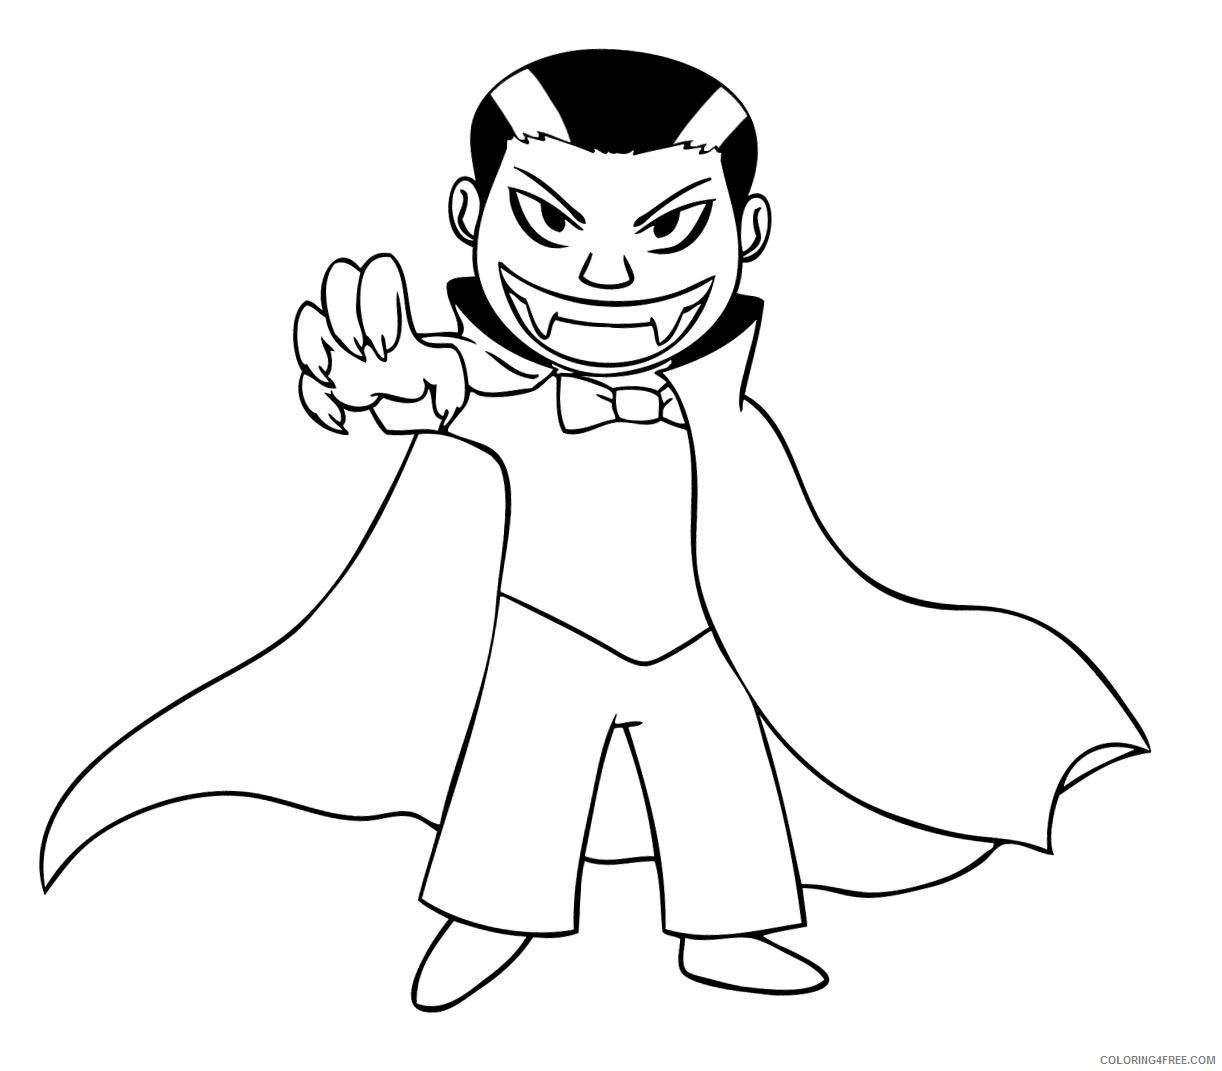 vampire coloring pages for boys Coloring4free